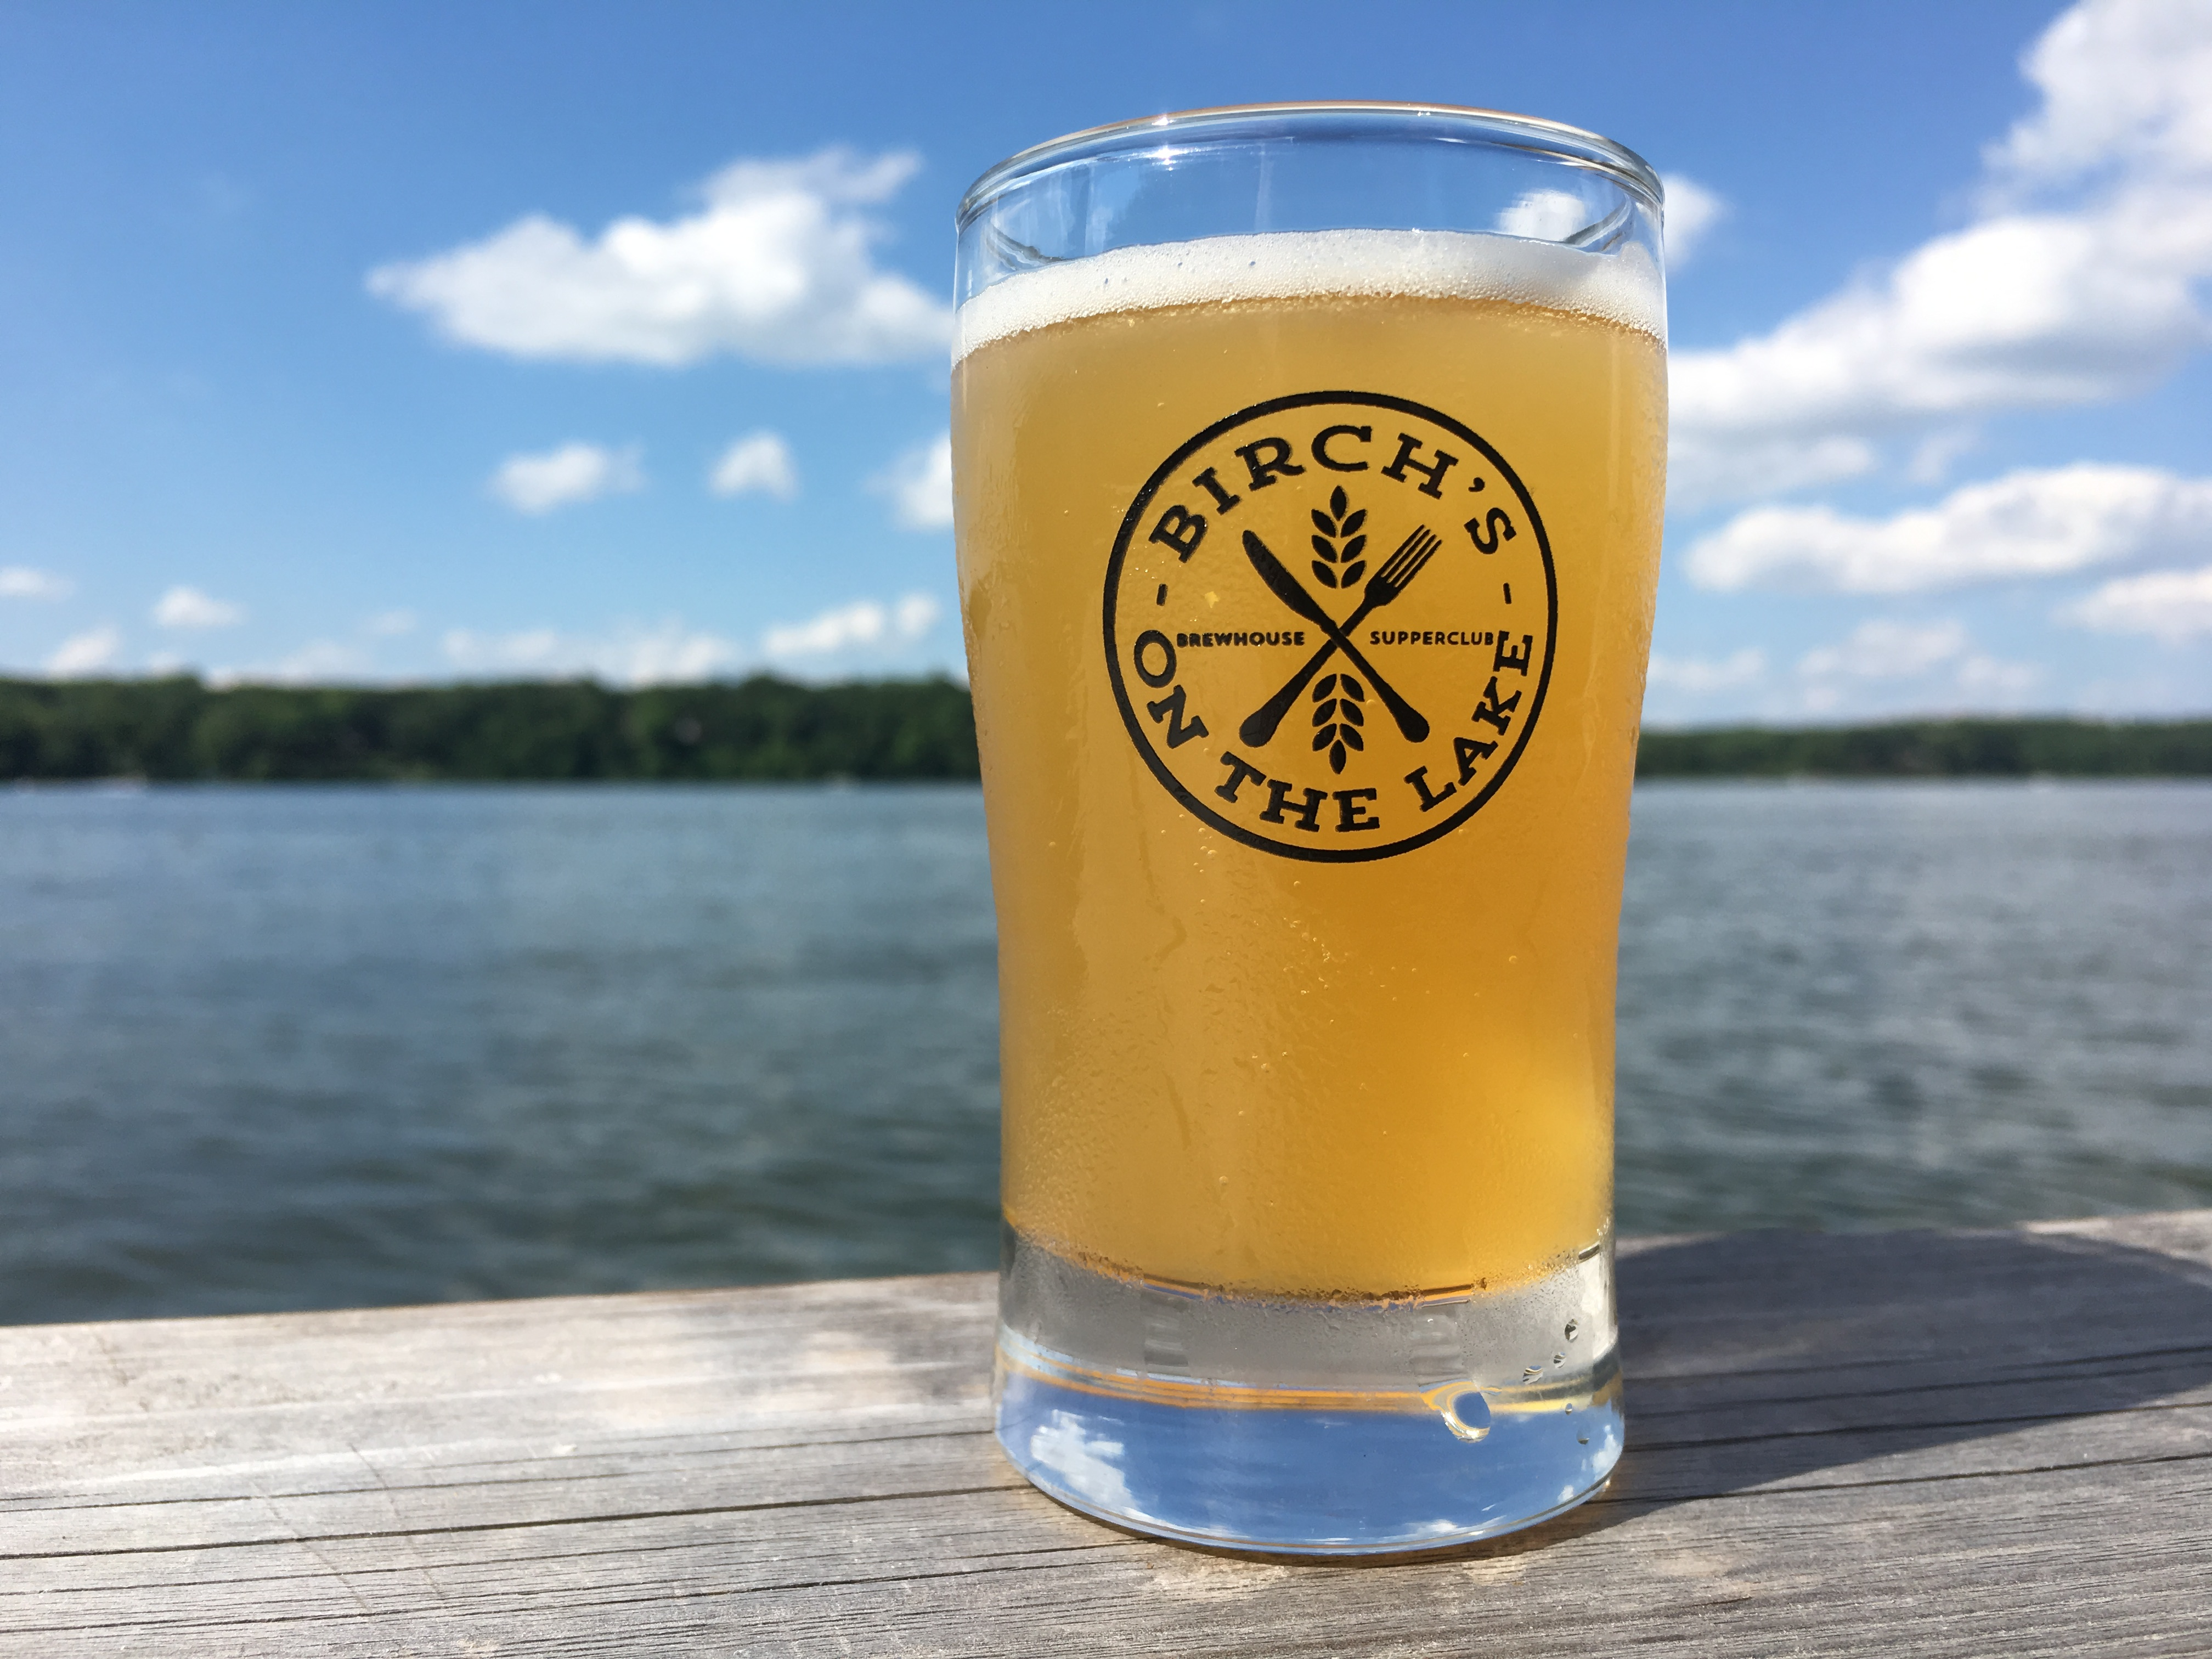 Birch's on the Lake is coming to St. Paul with a new Market House Collaborative location // Photo by Joseph Alton, The Growler